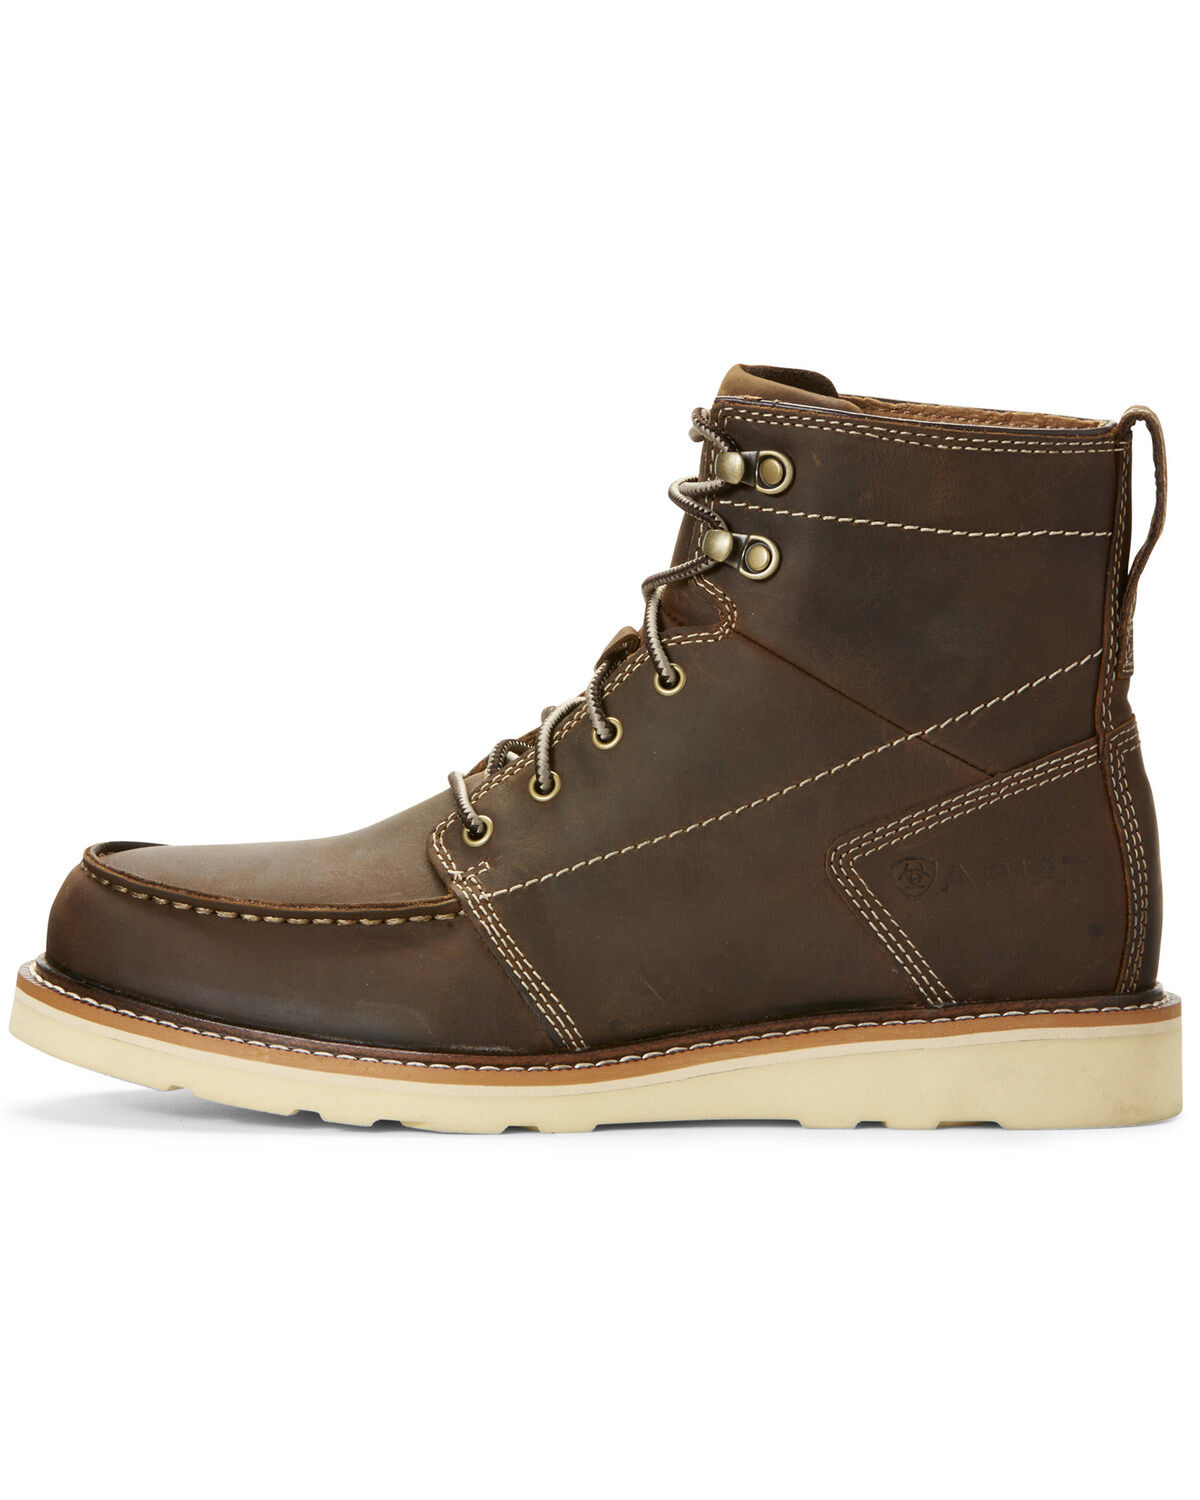 Ariat Men's Brewed Barley Recon Lace-Up